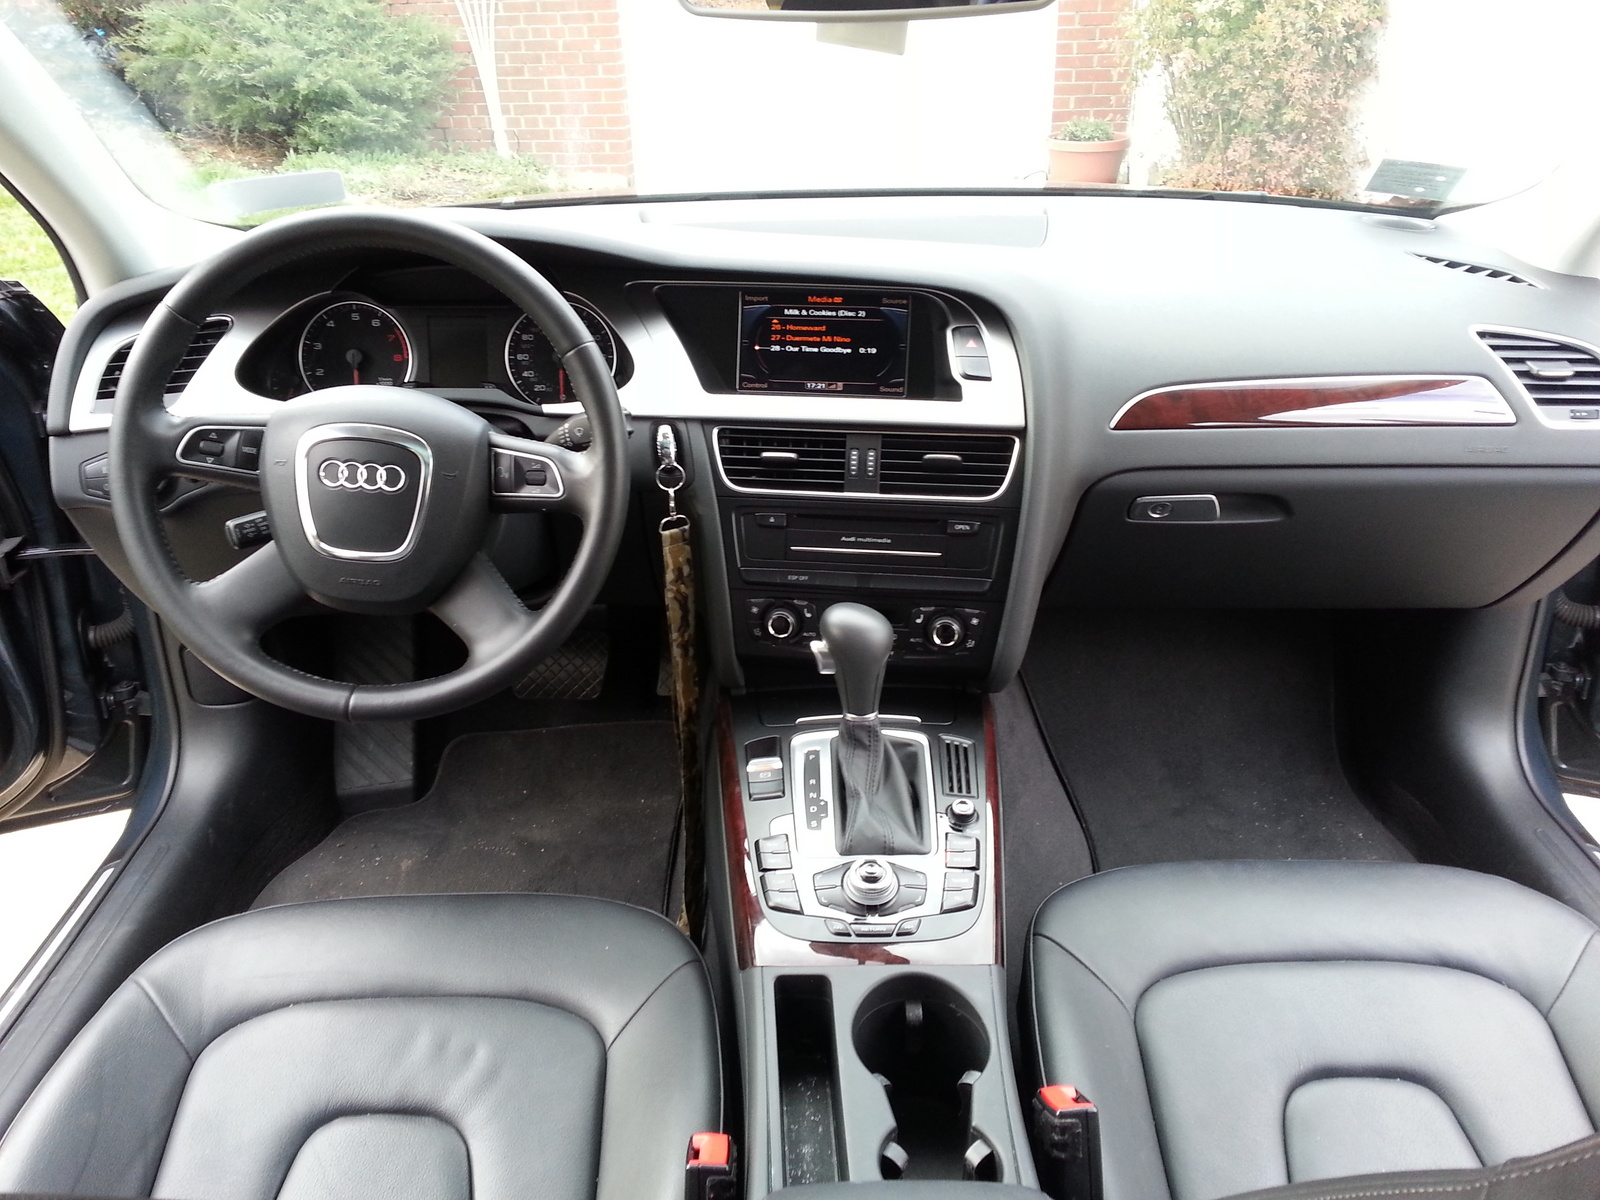 2010 audi a4 avant interior pictures cargurus. Black Bedroom Furniture Sets. Home Design Ideas